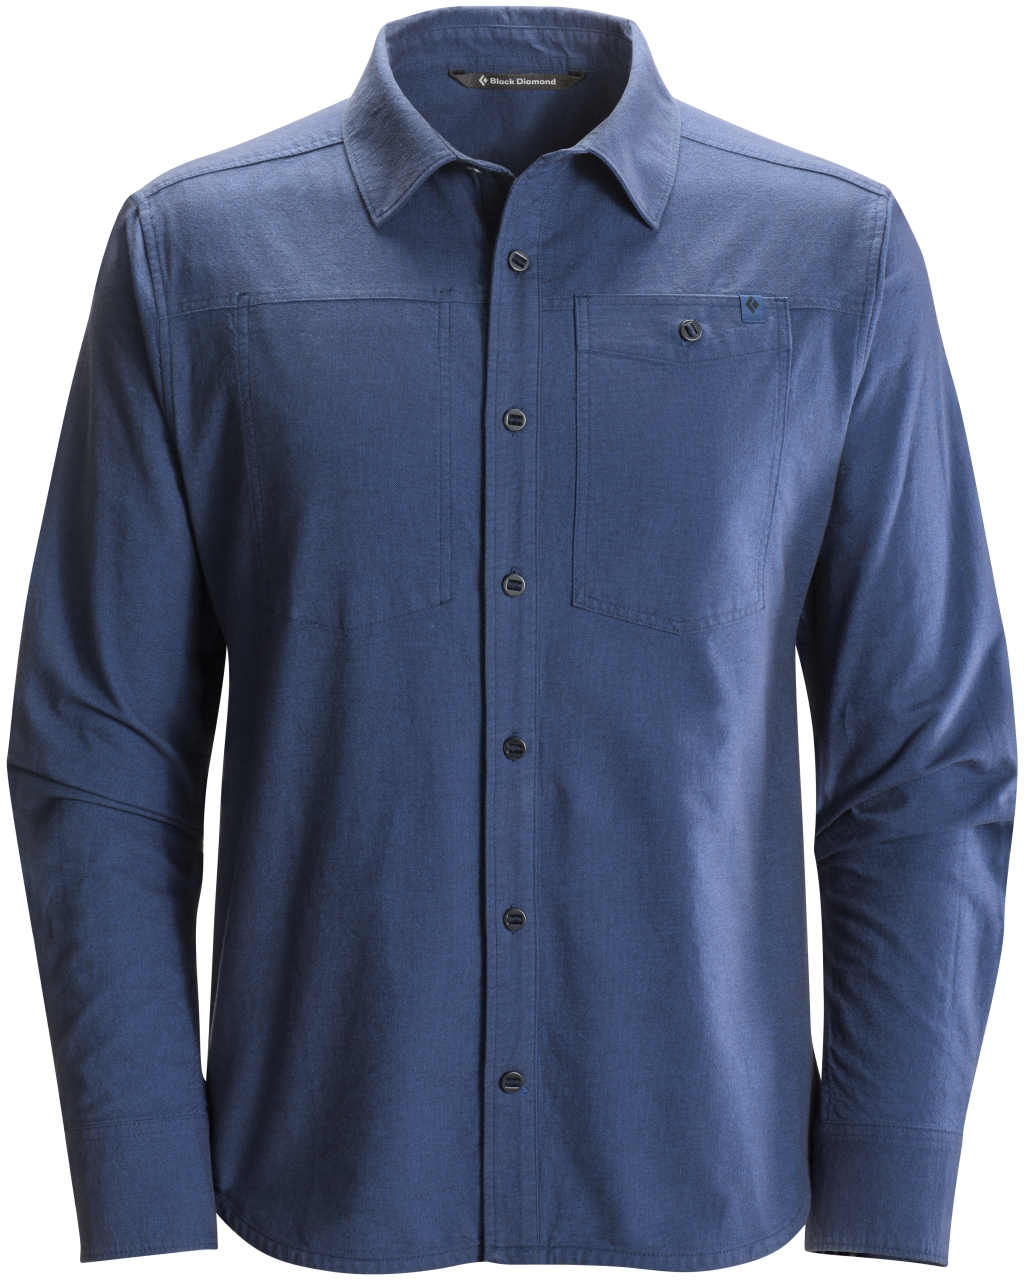 Black Diamond Long-Sleeve Chambray Modernist Shirt Denim-30